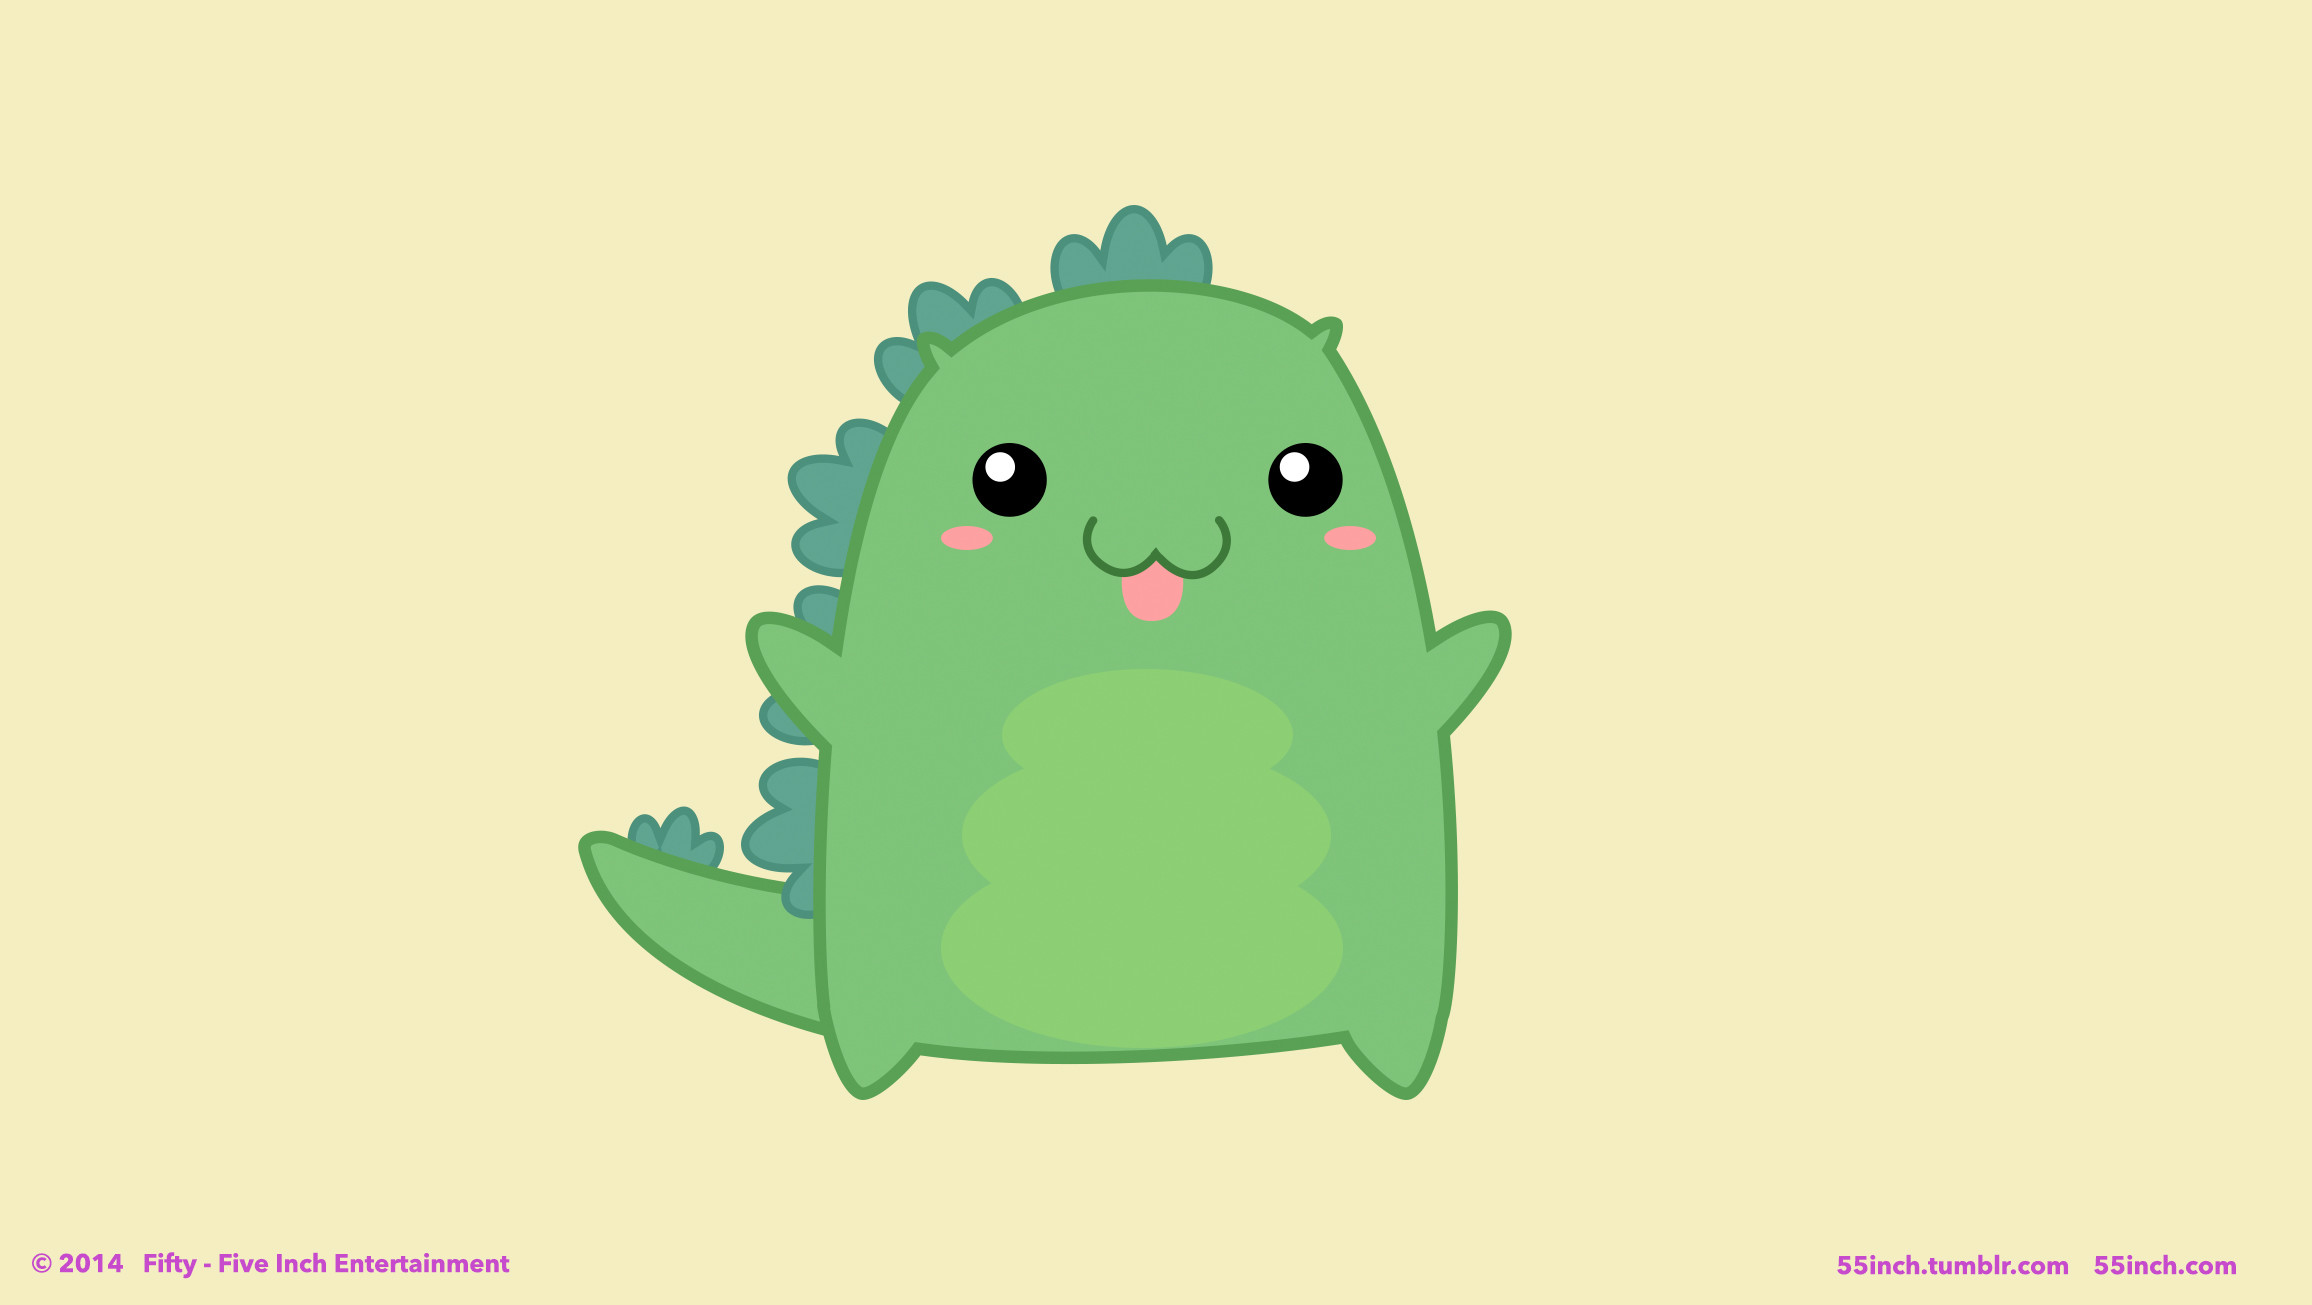 2312x1305 A super cute desktop from the new Godzilla Parody - How To Stop Godzilla ...